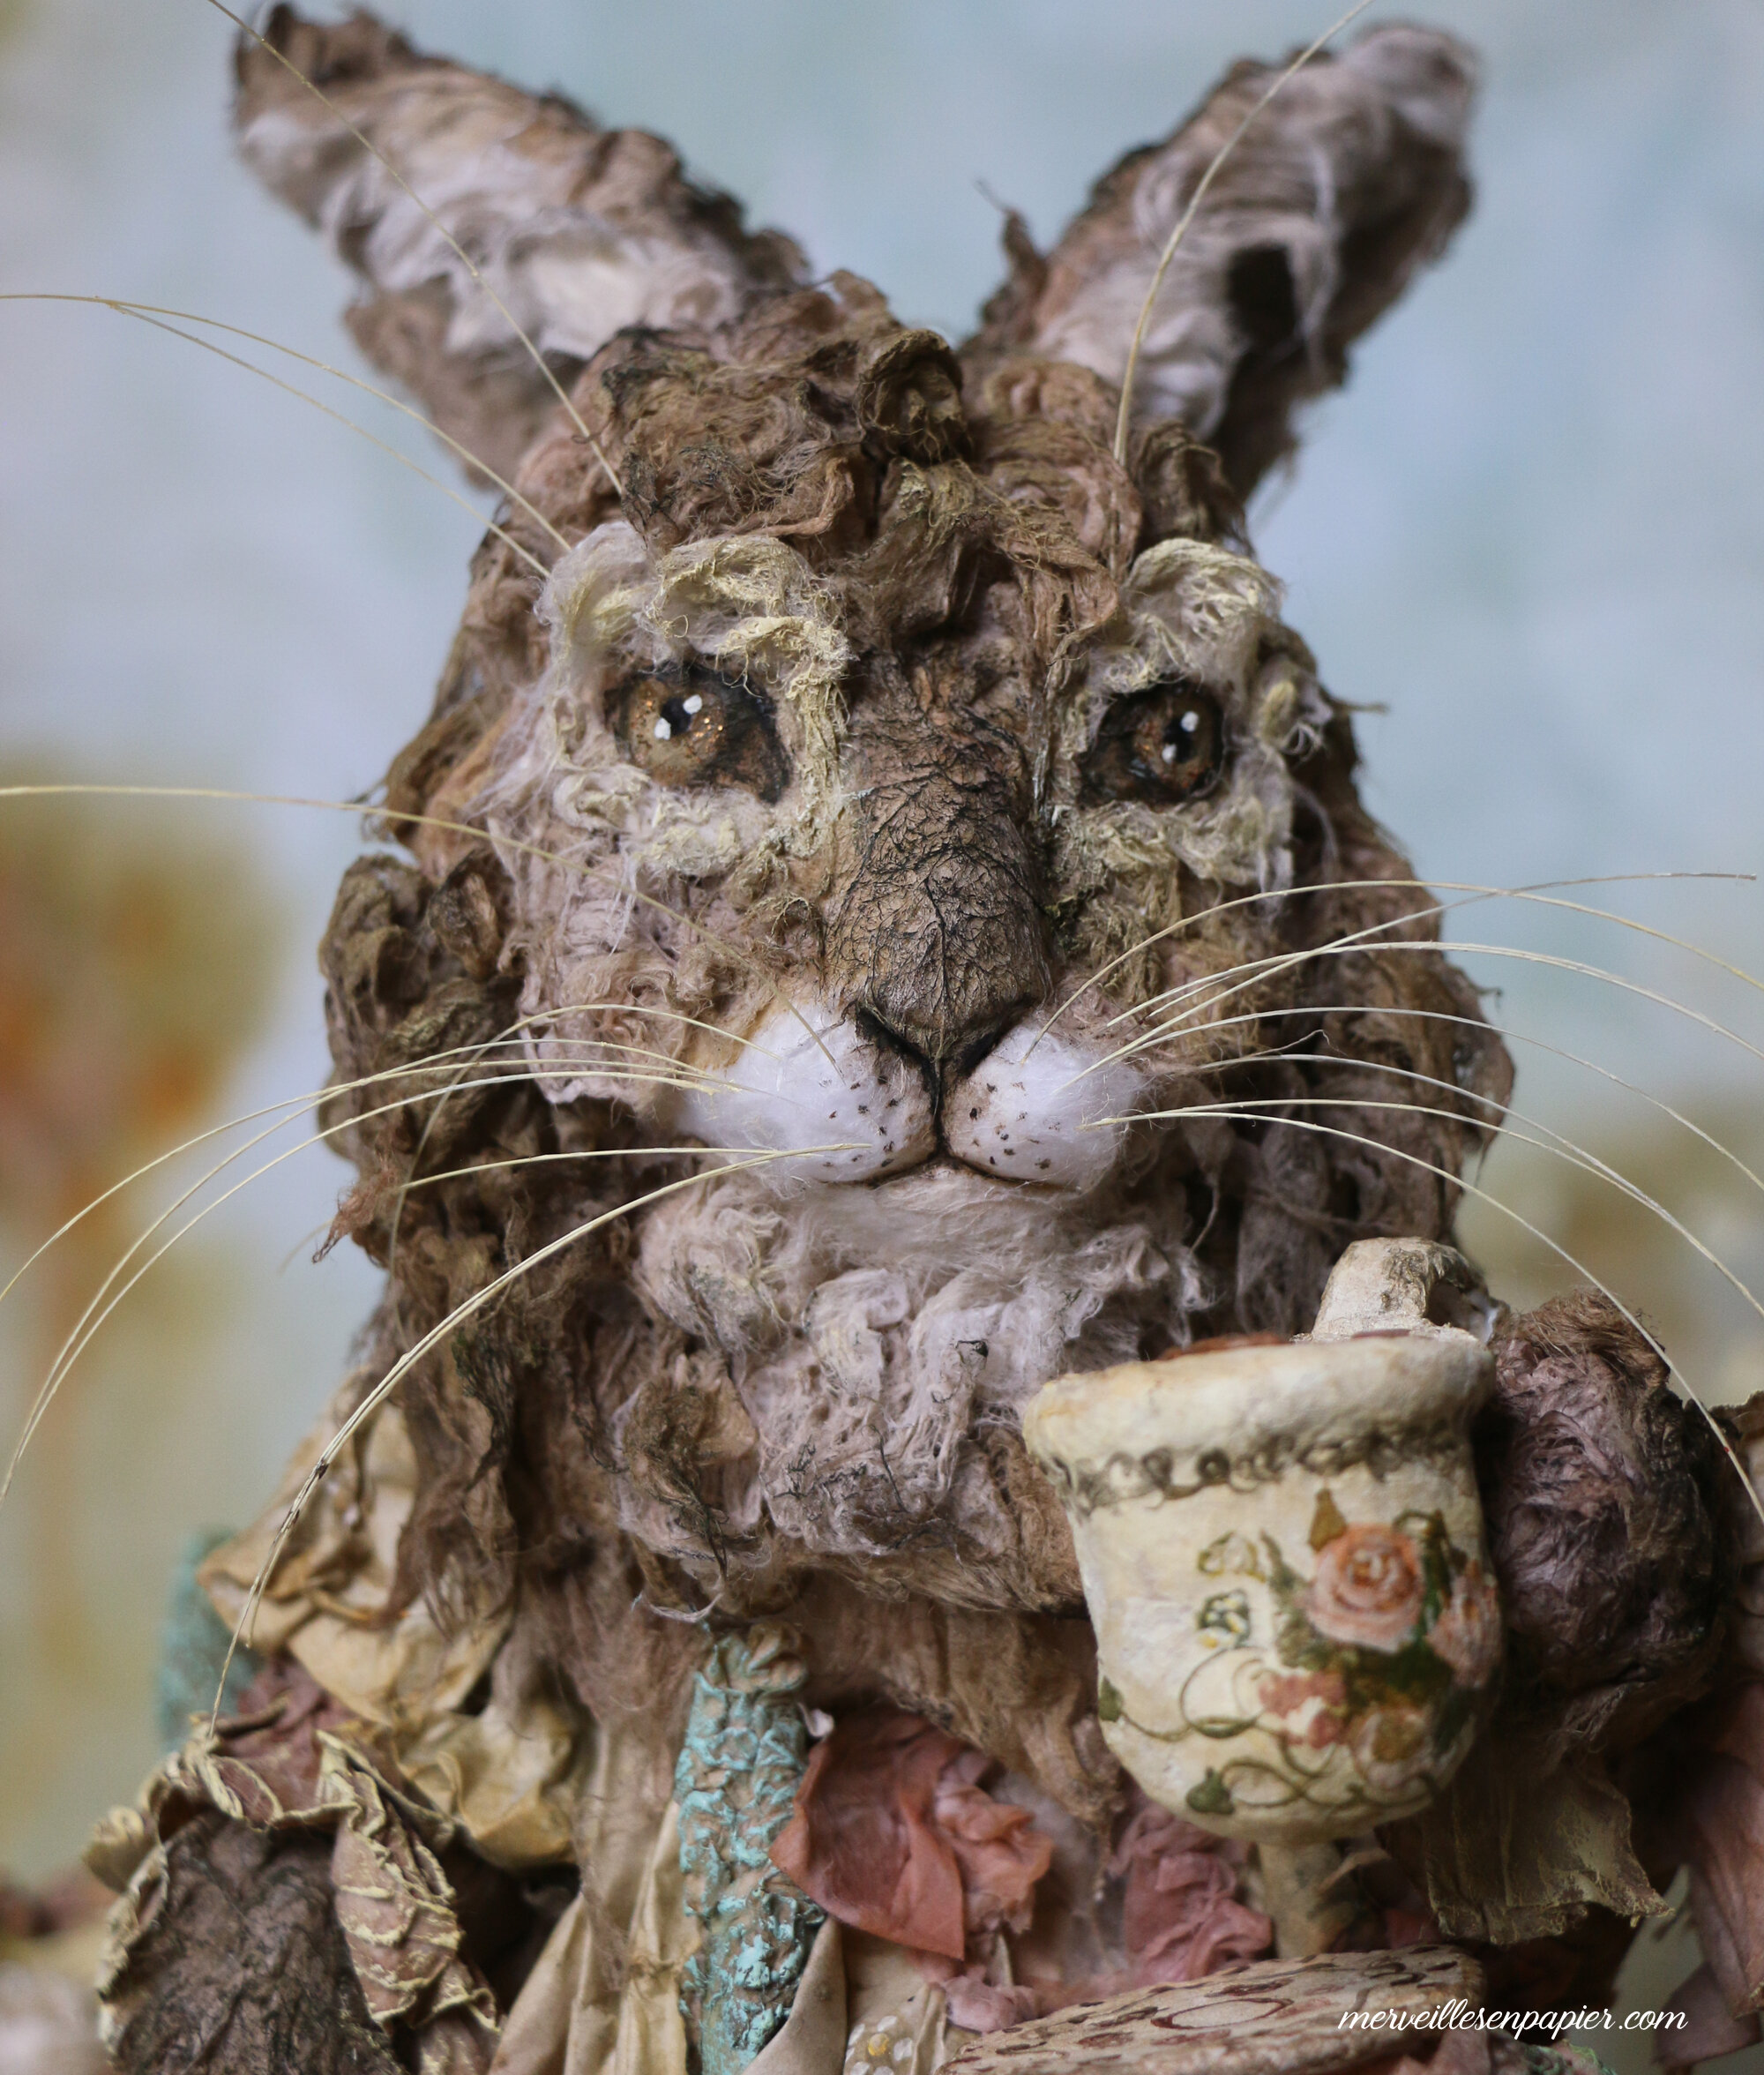 The-hare-and-the-tortoise-66.jpg